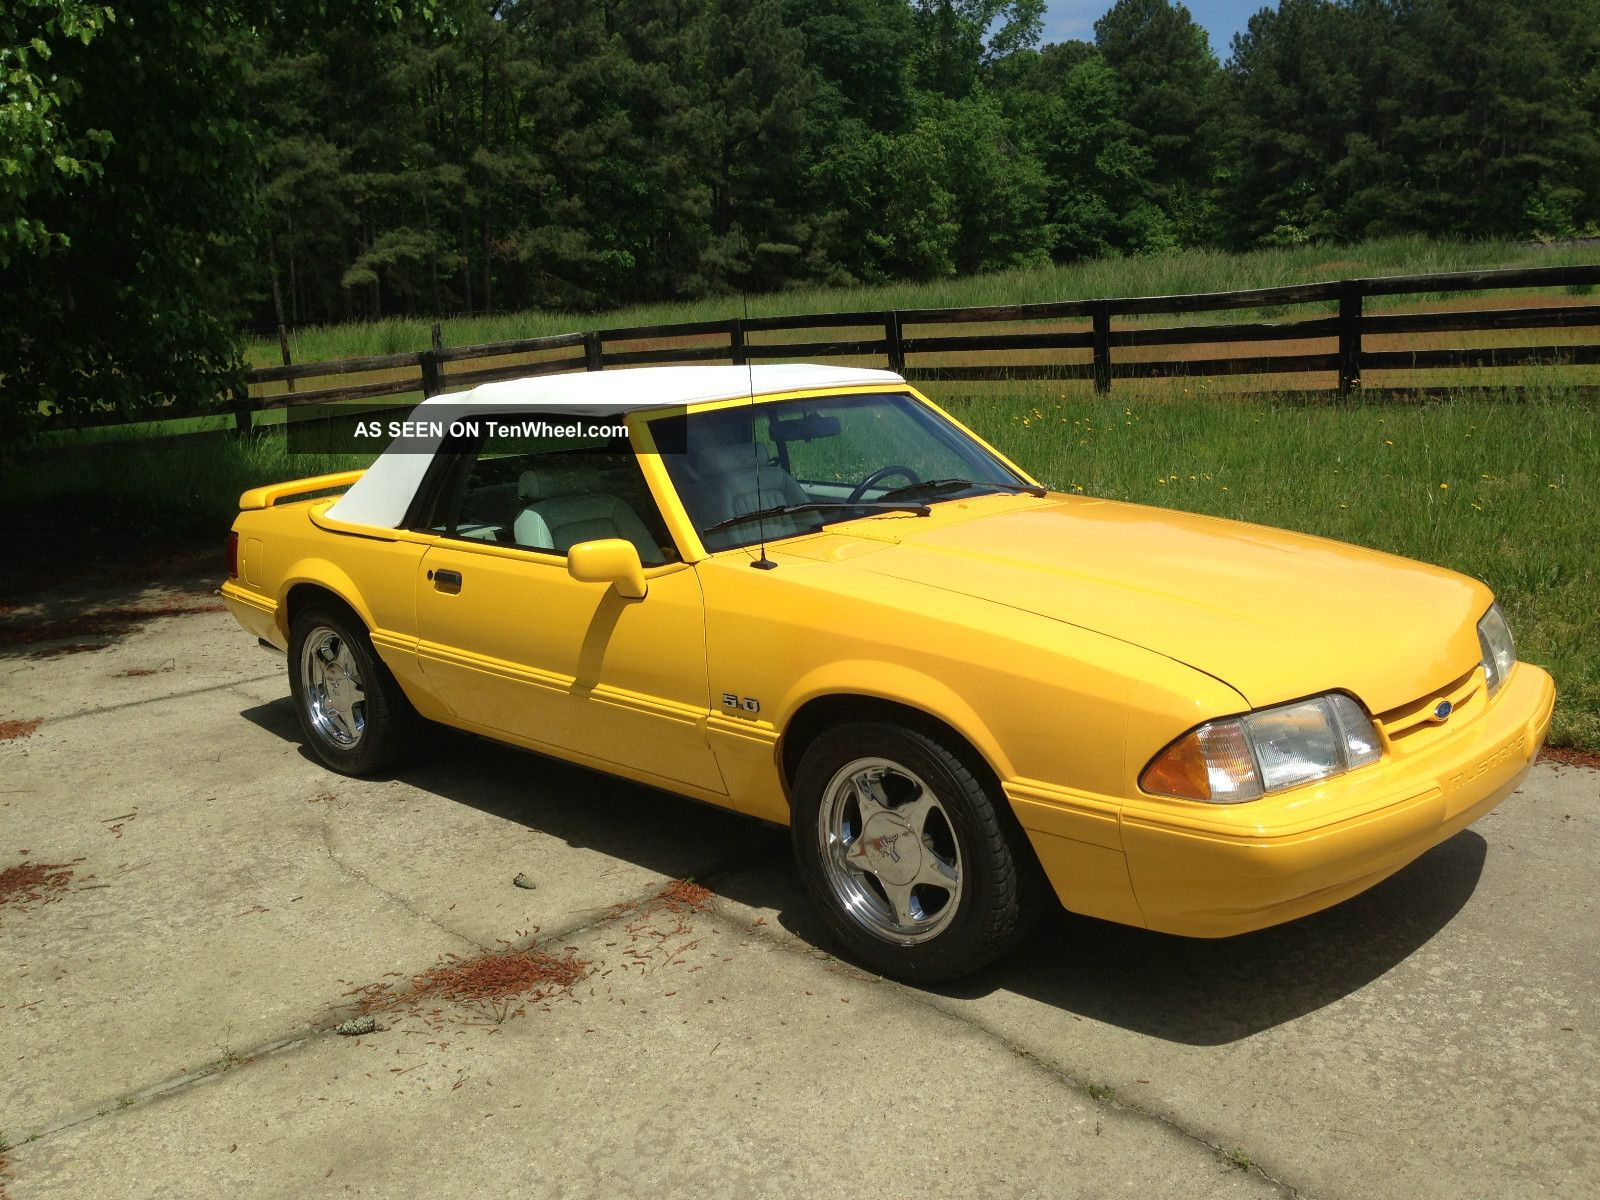 1993 ford mustang lx 5 0 yellow convertible. Black Bedroom Furniture Sets. Home Design Ideas